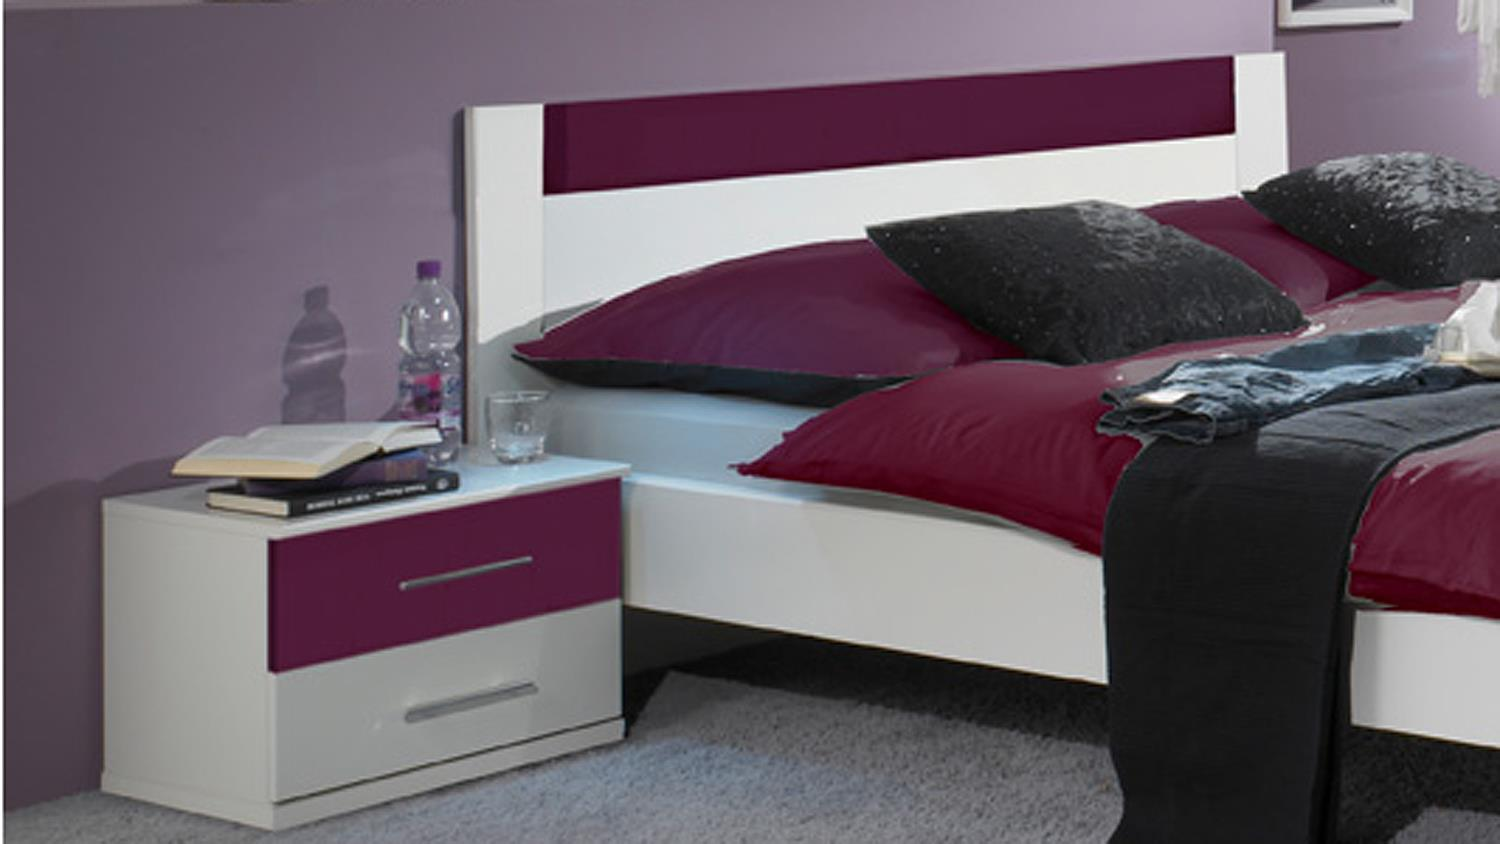 schlafzimmer komplett home24 licht deko schlafzimmer pinie wei die richtige wandfarbe f r das. Black Bedroom Furniture Sets. Home Design Ideas